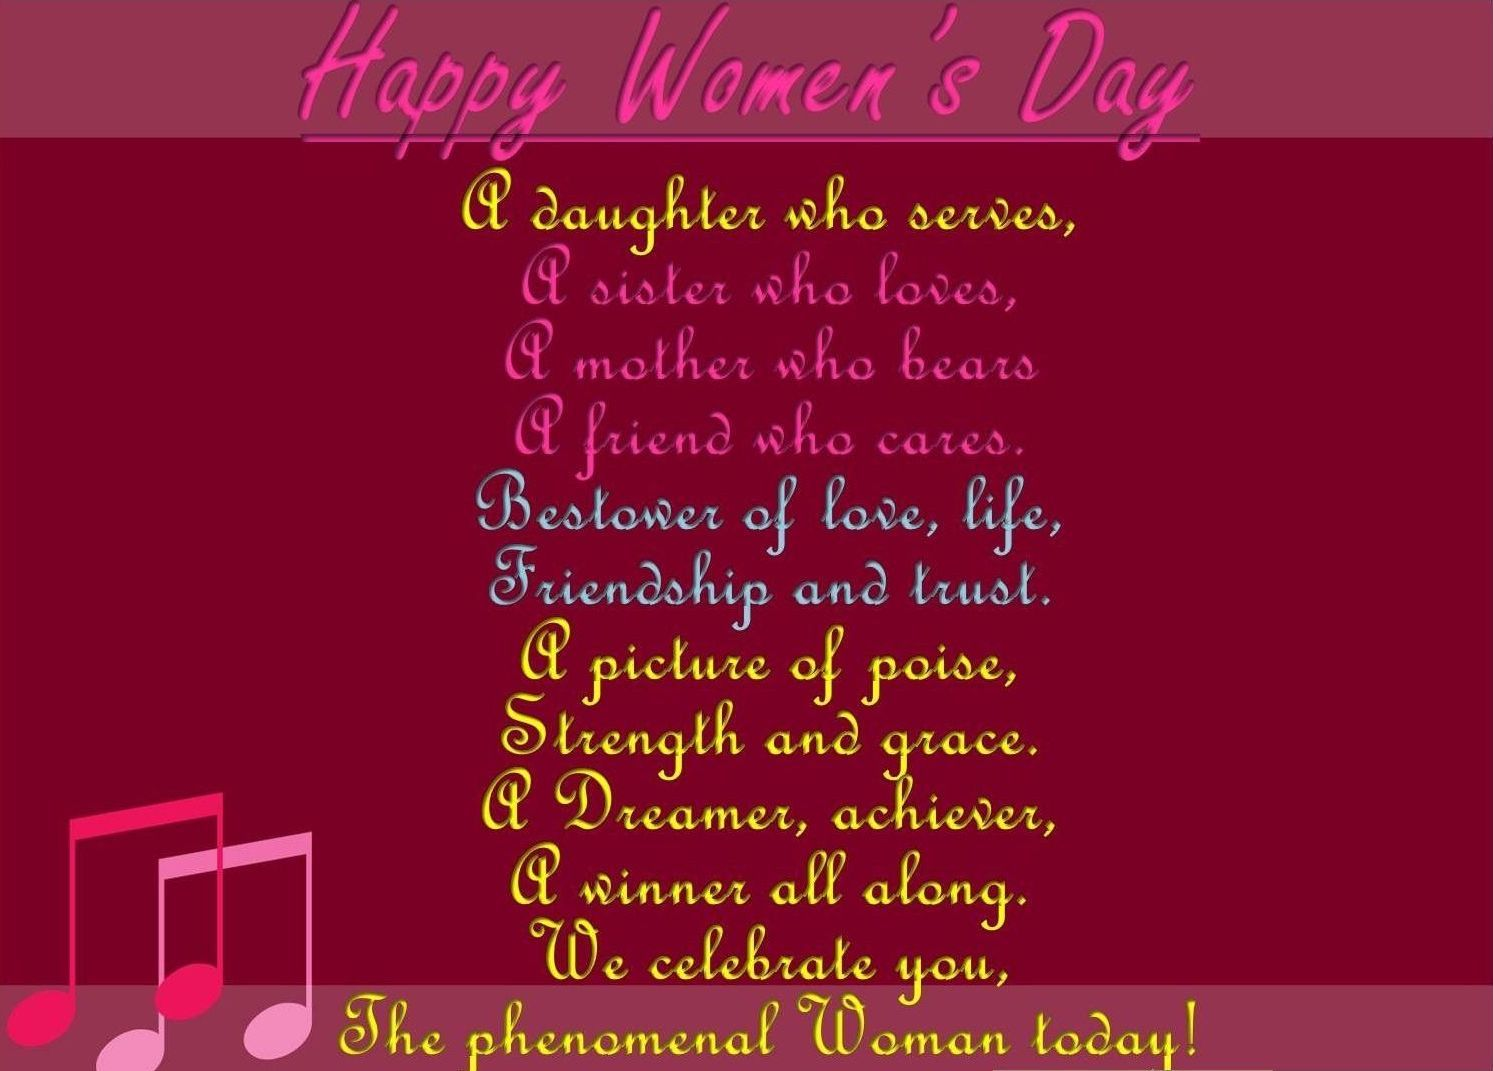 Women's Day Quotes Happy Women's Day  2015 Quotes And Feminism